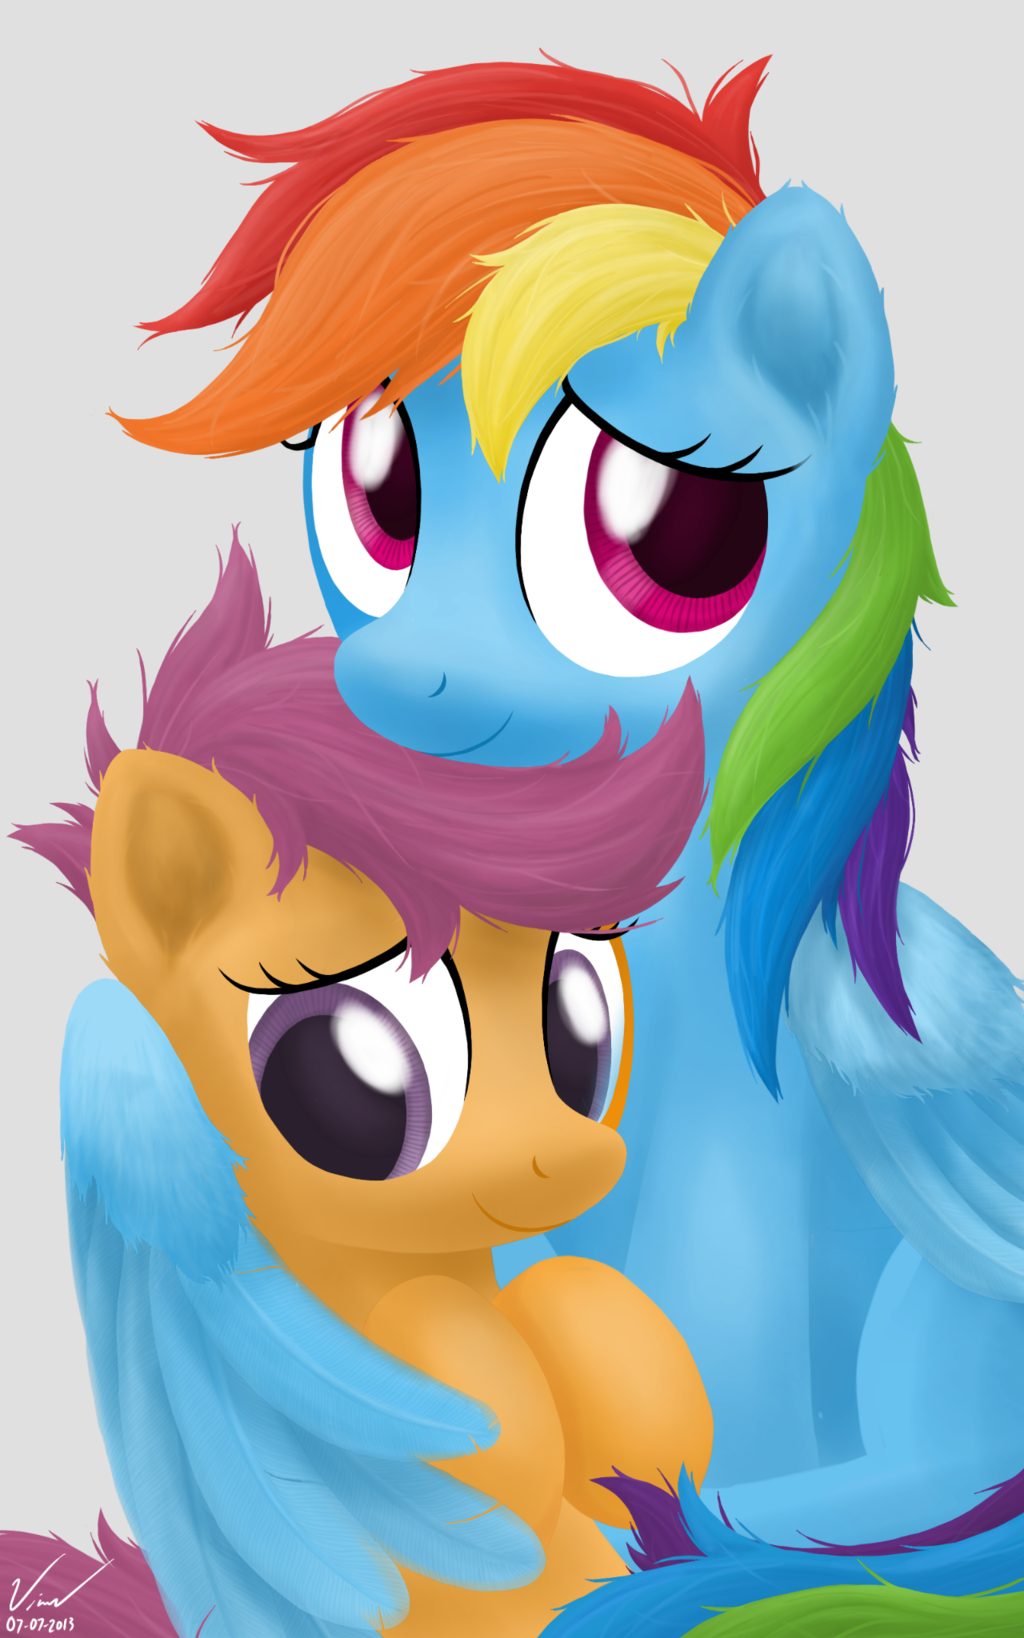 Photograph Rainbow Dash And Scootaloo By Symbianl On Deviantart Rainbow Dash Mlp My Little Pony Pony How could she ever have forgotten? rainbow dash mlp my little pony pony